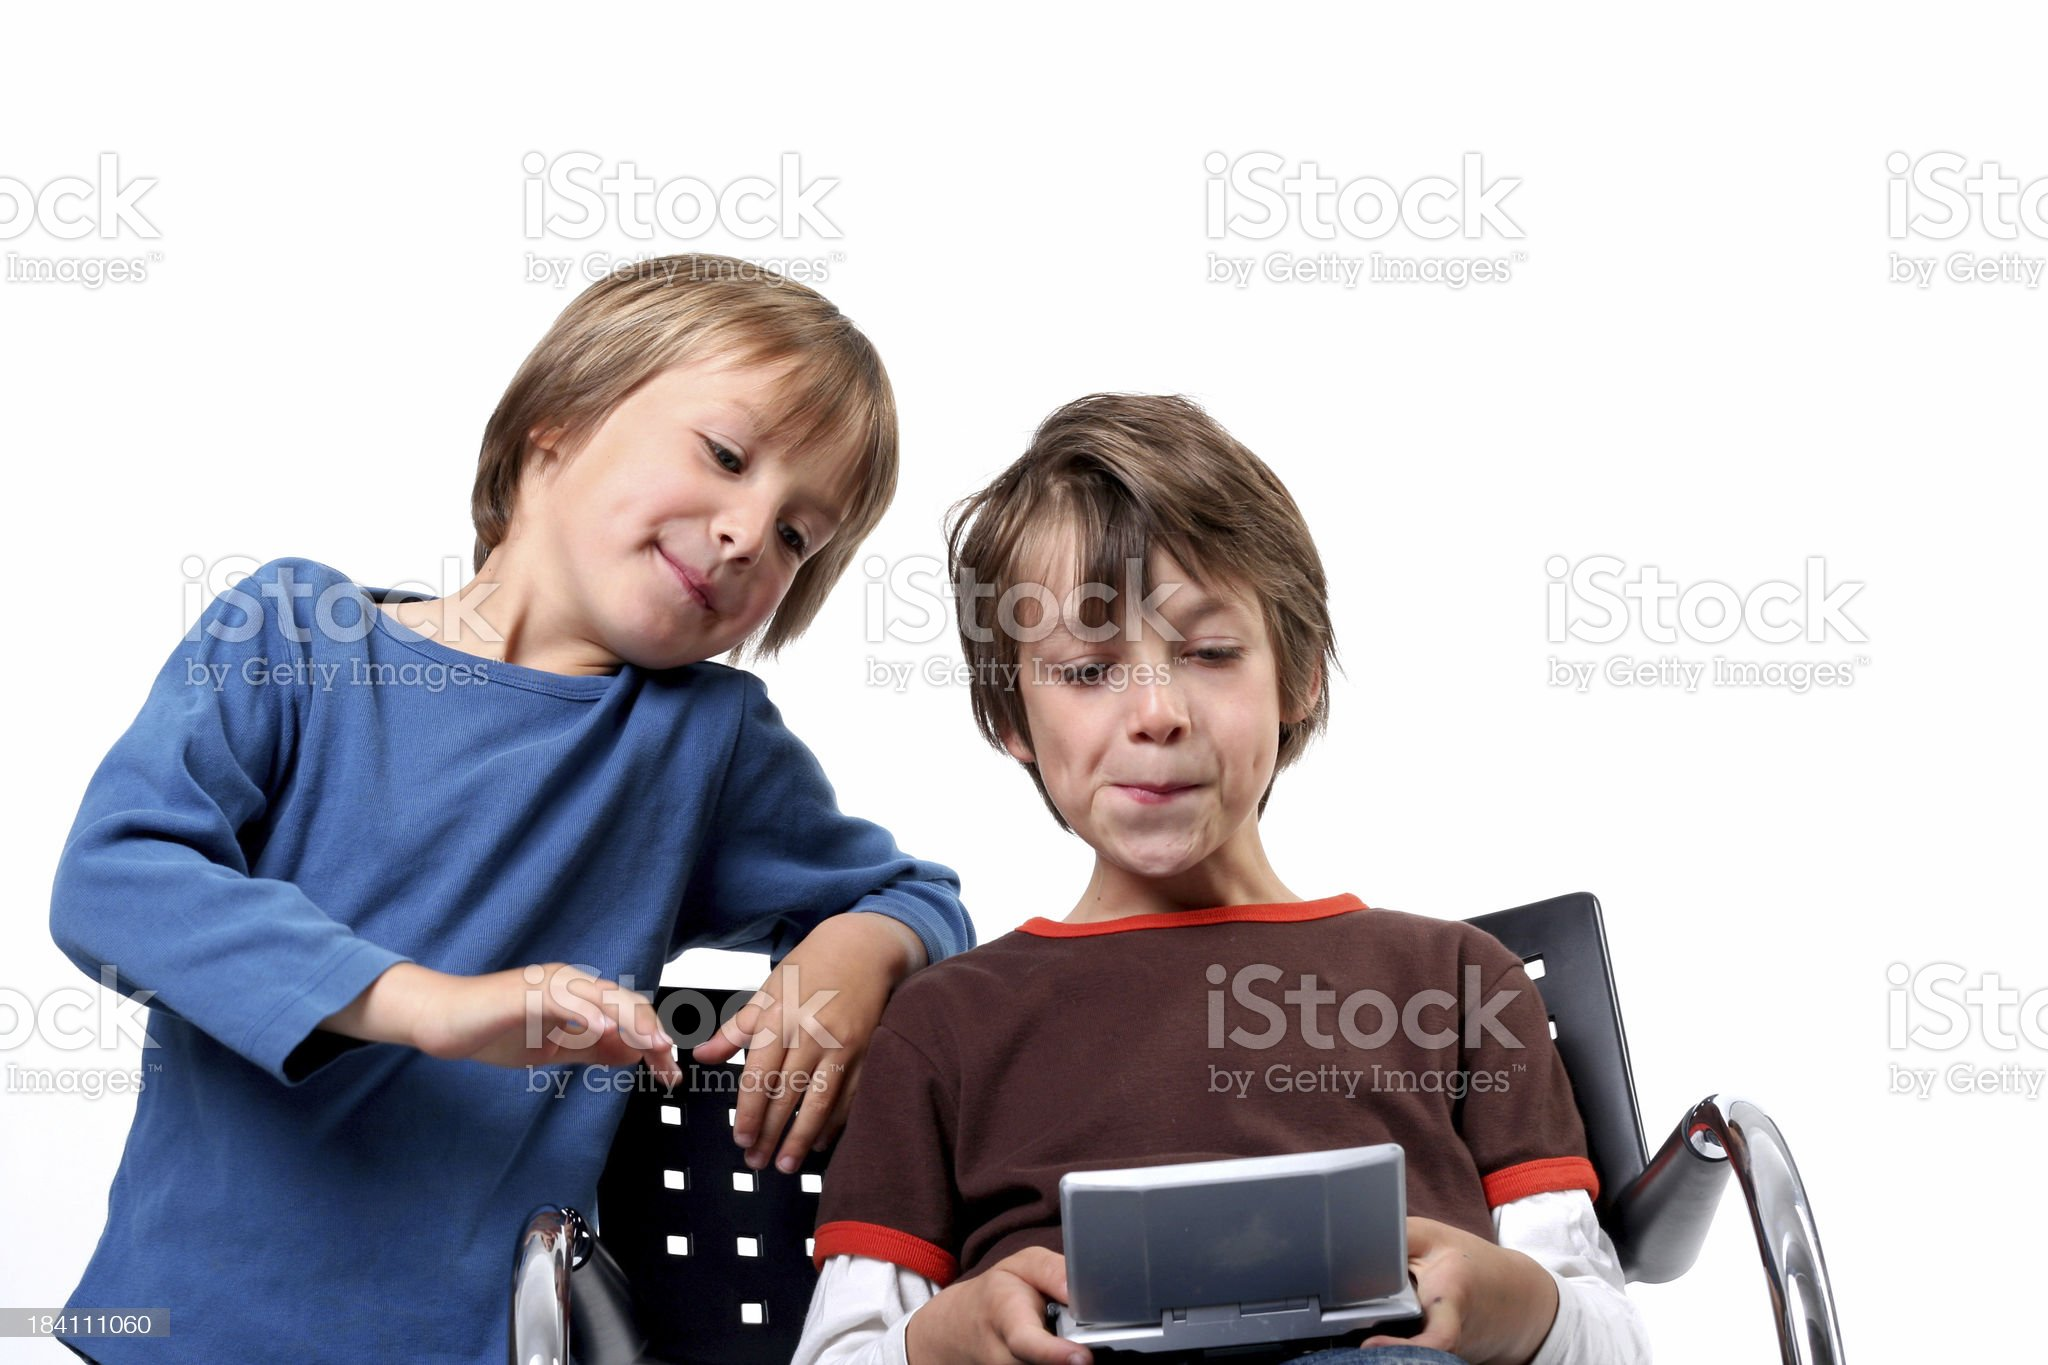 two boys playing a video game white background royalty-free stock photo